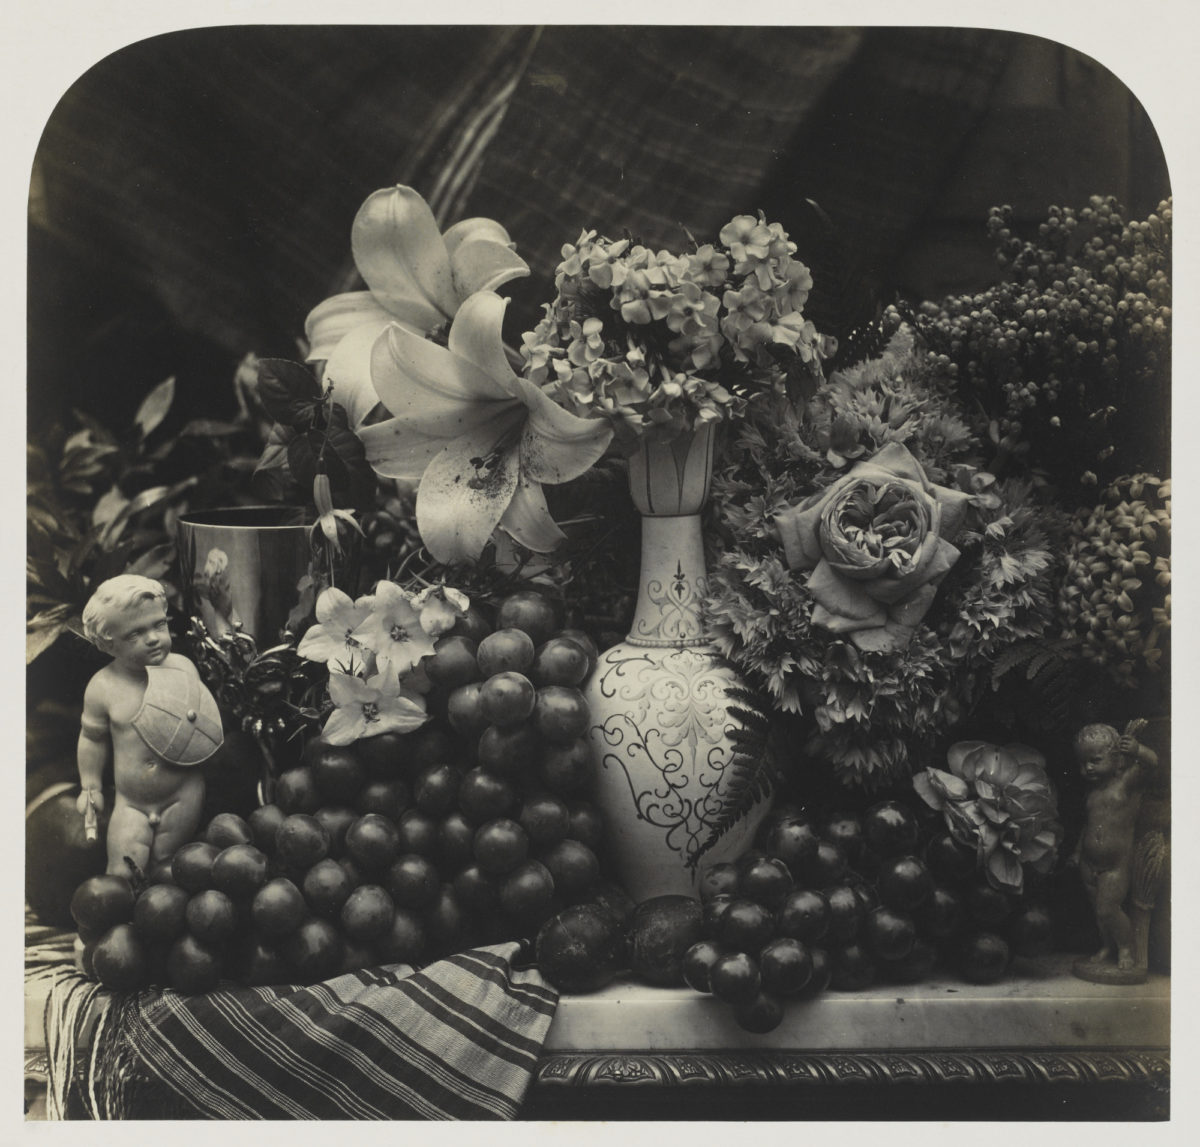 Roger Fenton, Still Life with Vase, Flowers and Fruit, 1853–60, albumen print © The Royal Photographic Society Collection at the Victoria & Albert Museum, acquired with the generous assistance of the National Lottery Heritage Fund and Art Fund